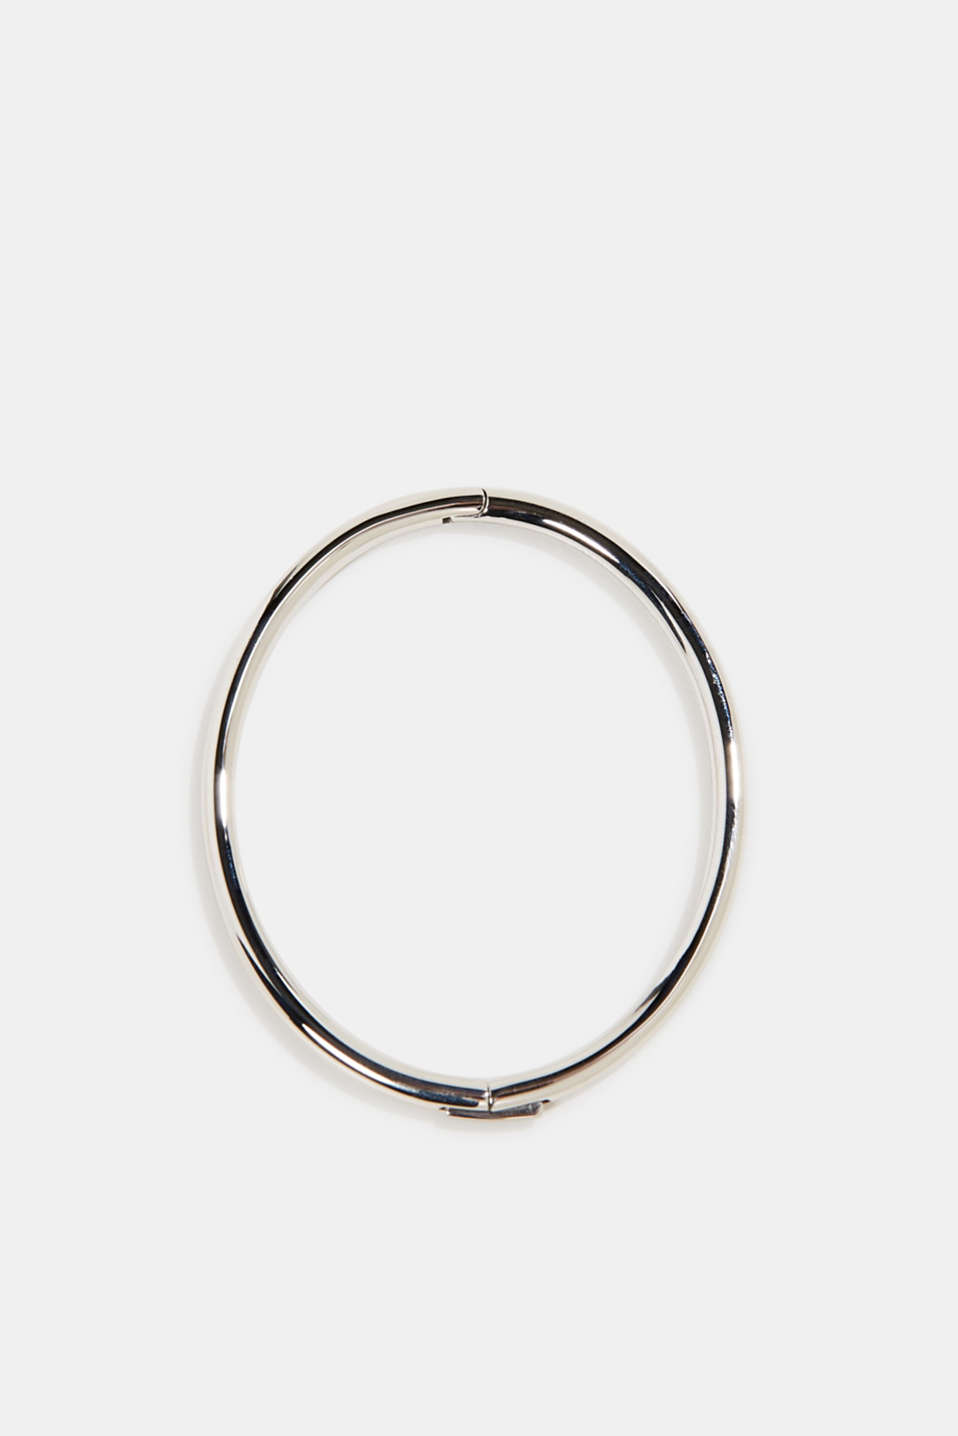 Bangle made of stainless steel, LCSILVER, detail image number 0